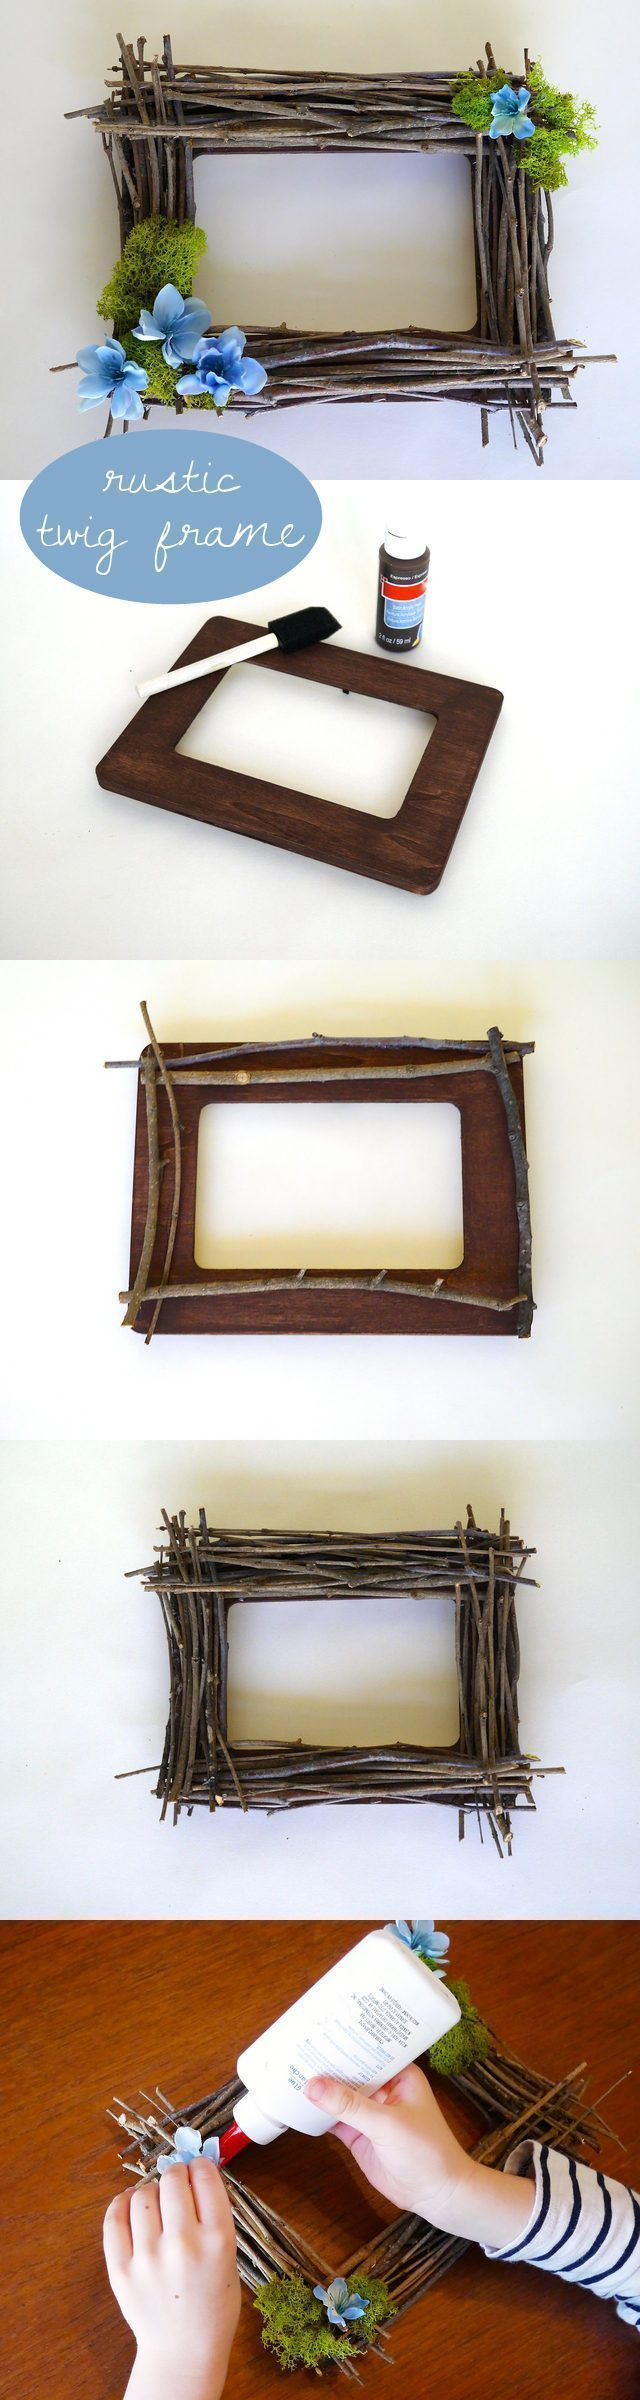 A great way to celebrate spring! This rustic twig frame is a great afternoon crafts project for the kids and is really cheap.  They are twigs, people! It's time for some spring in our homes... www.ehow.com/...